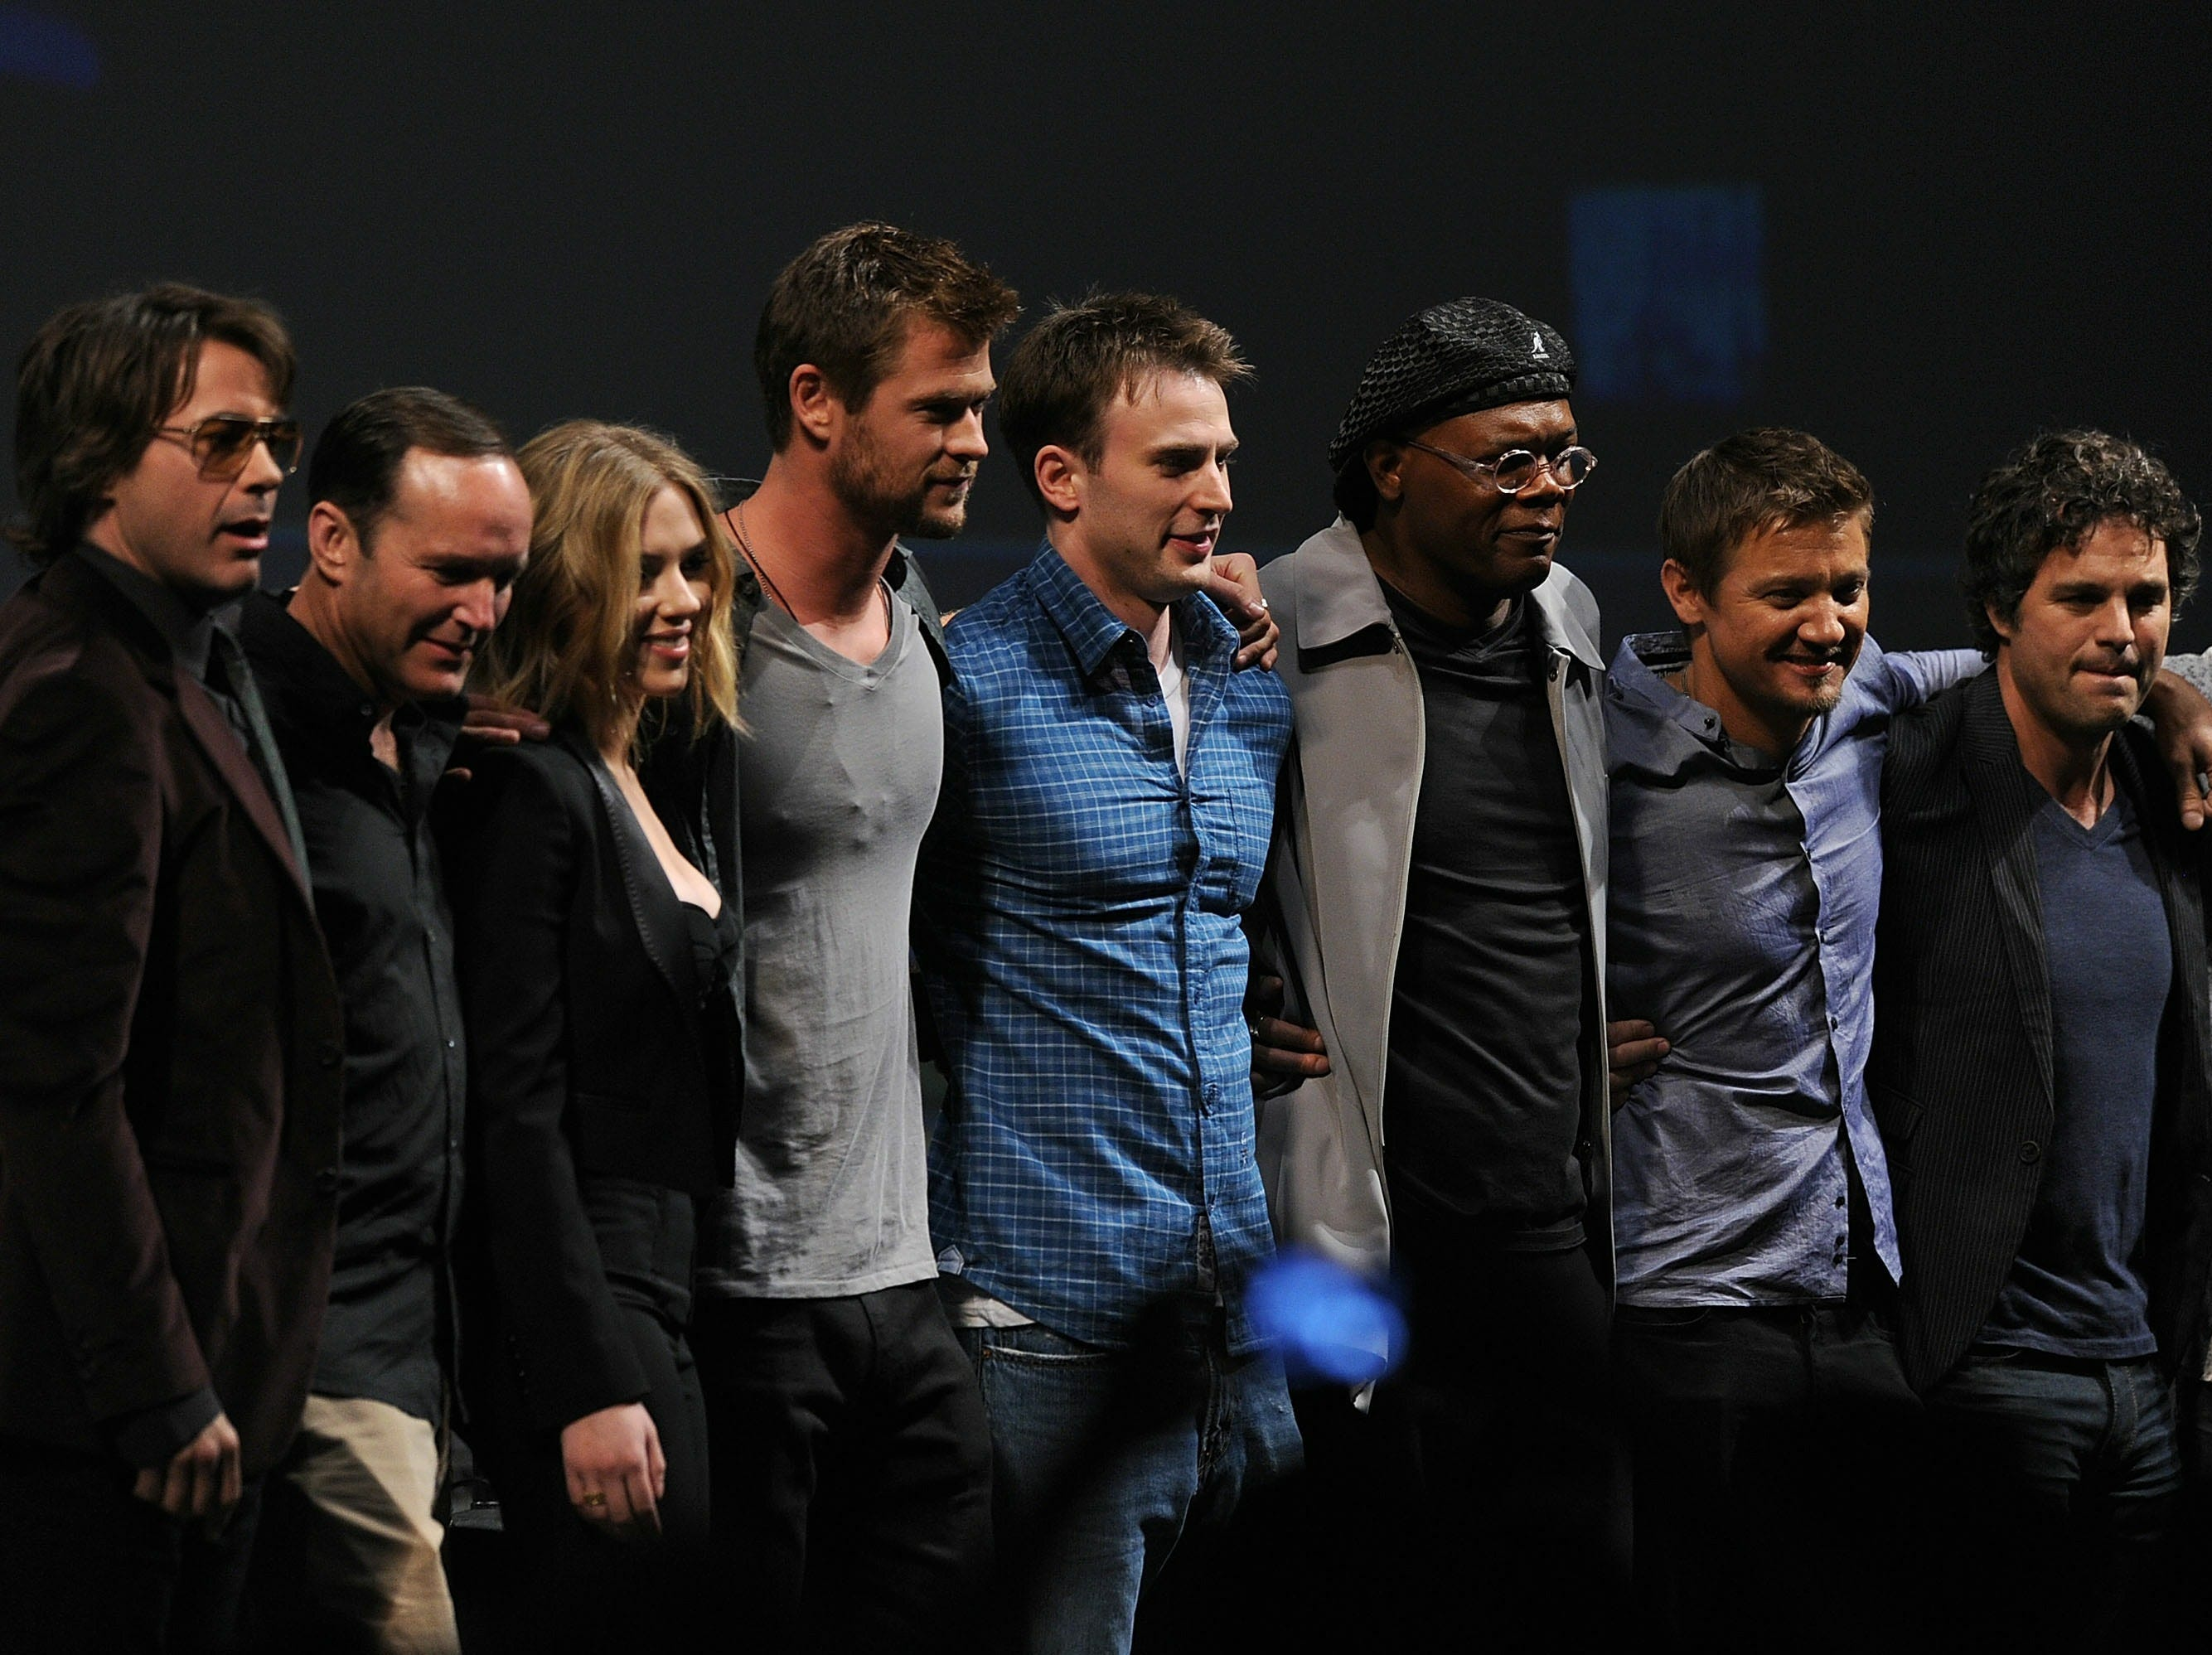 "ORG XMIT: 102640660 SAN DIEGO - JULY 24:  (L-R) Actors Robert Downey Jr., Clark Gregg, Scarlett Johansson, Chris Hemsworth, Chris Evans, Samuel L. Jackson, Jeremy Renner, Mark Ruffalo and writer/Director Joss Whedon pose onstage at the Marvel Studios' ""Captain America: The First Avenger"" panel during Comic-Con 2010 at San Diego Convention Center on July 24, 2010 in San Diego, California.  (Photo by Kevin Winter/Getty Images) GTY ID: 640660TT005_Marvel_Studi"